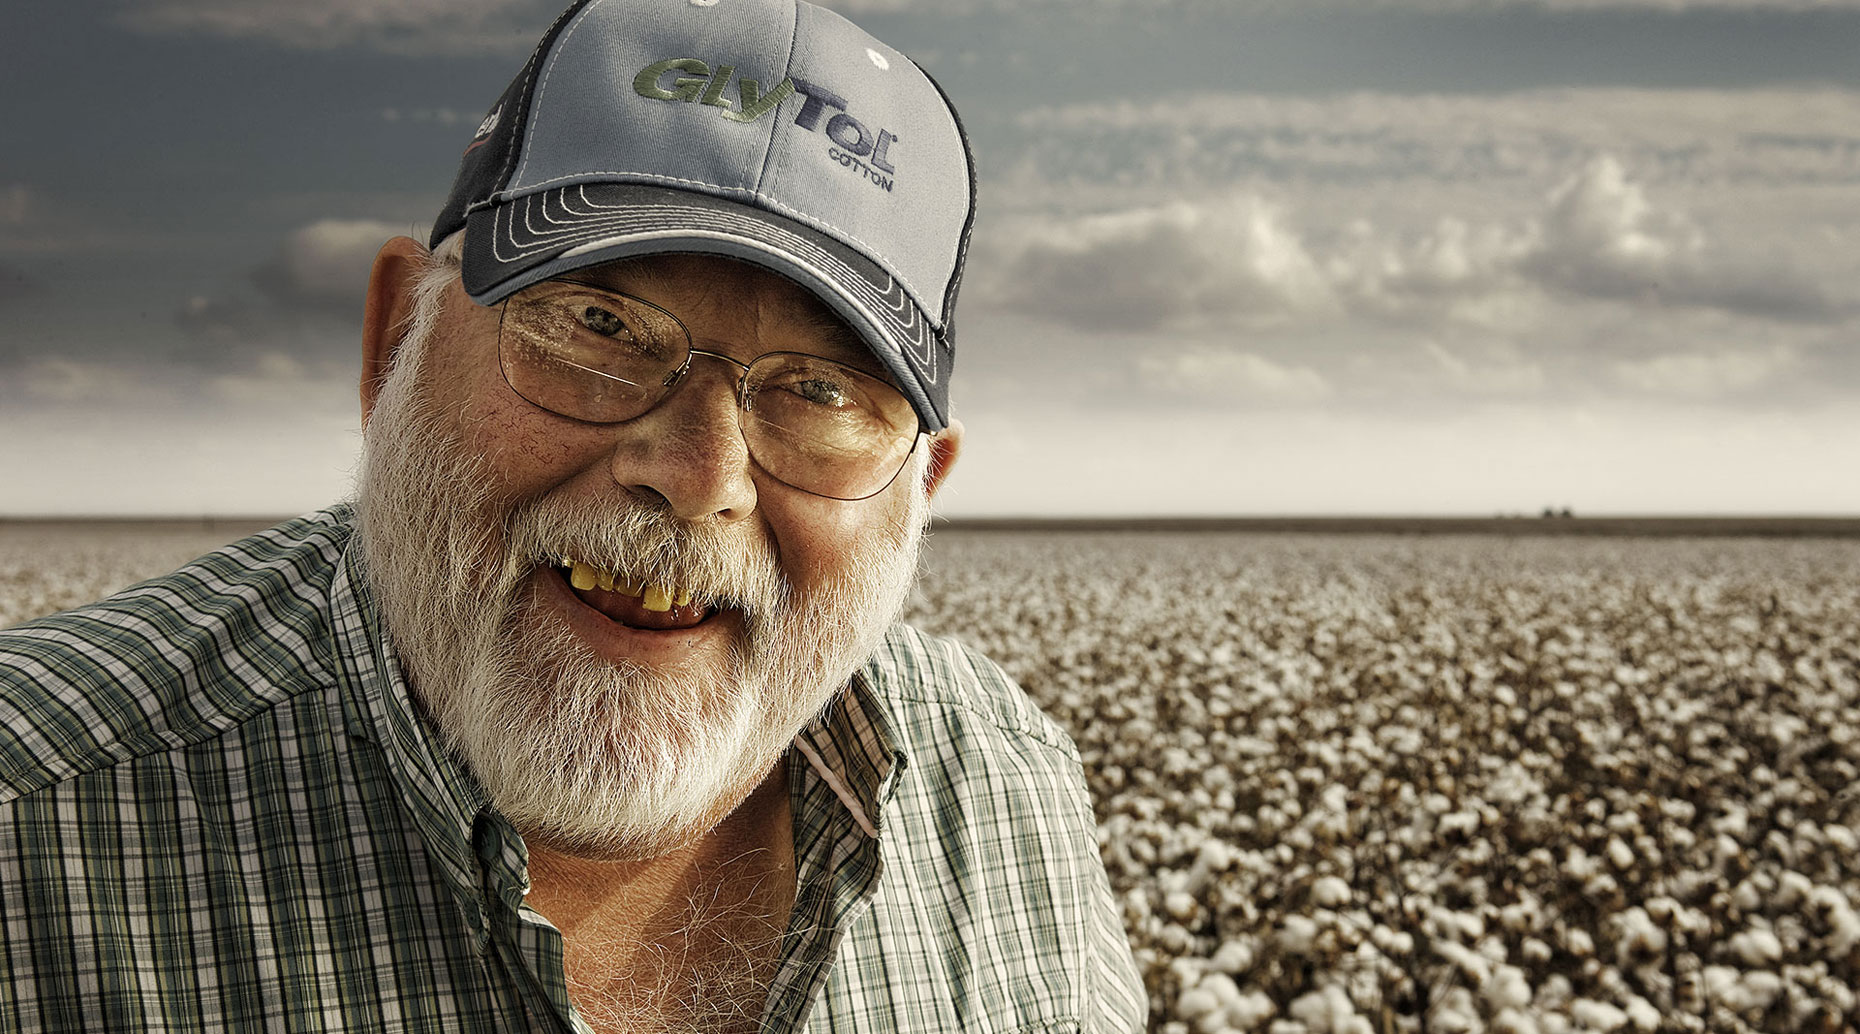 Old agronomist in a cotton field in West Texas.